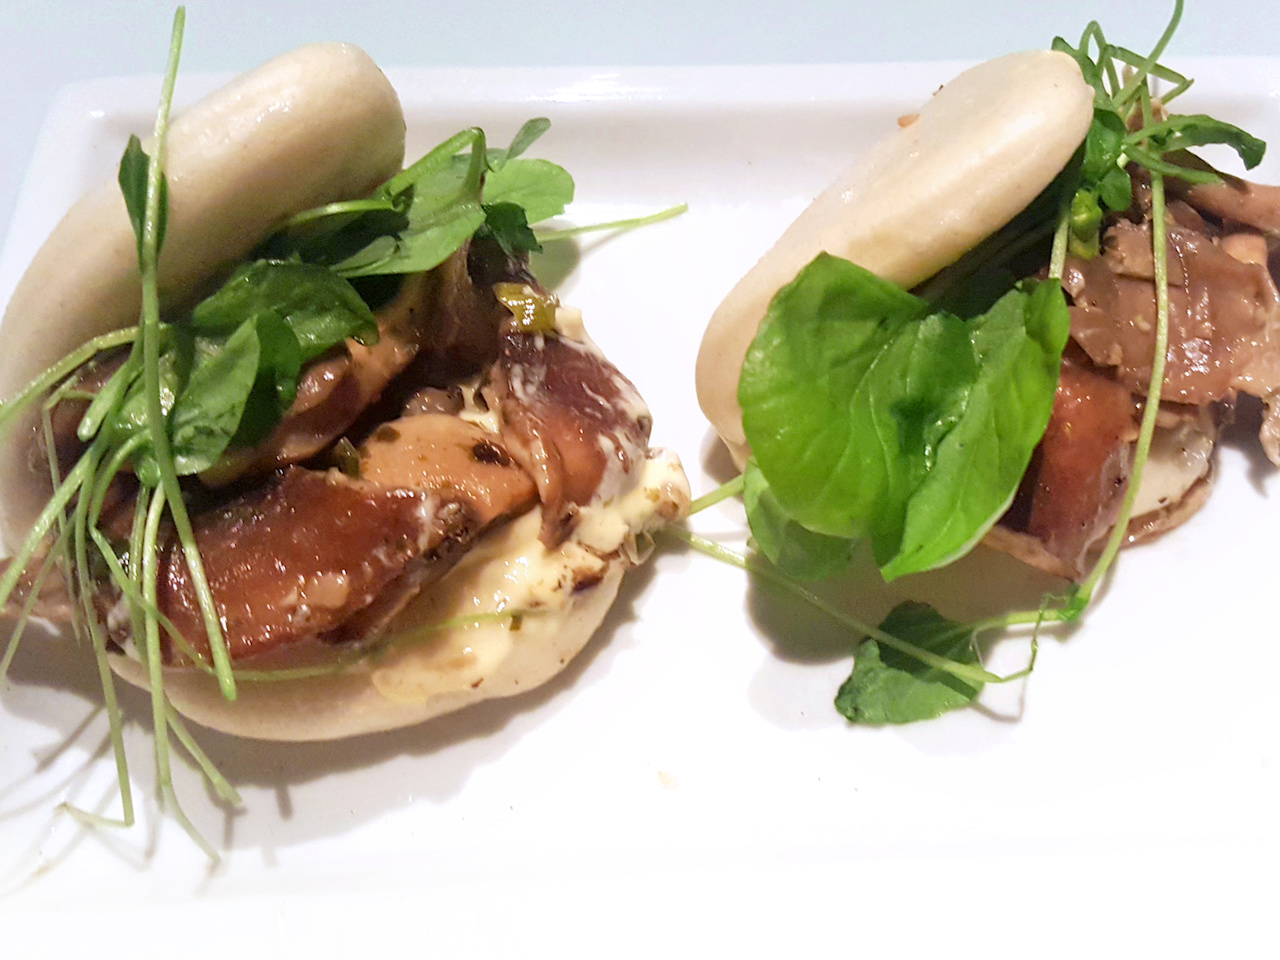 The mushroom buns feature oyster and Shiitake mushrooms, as well as garlic yuzu and aonori